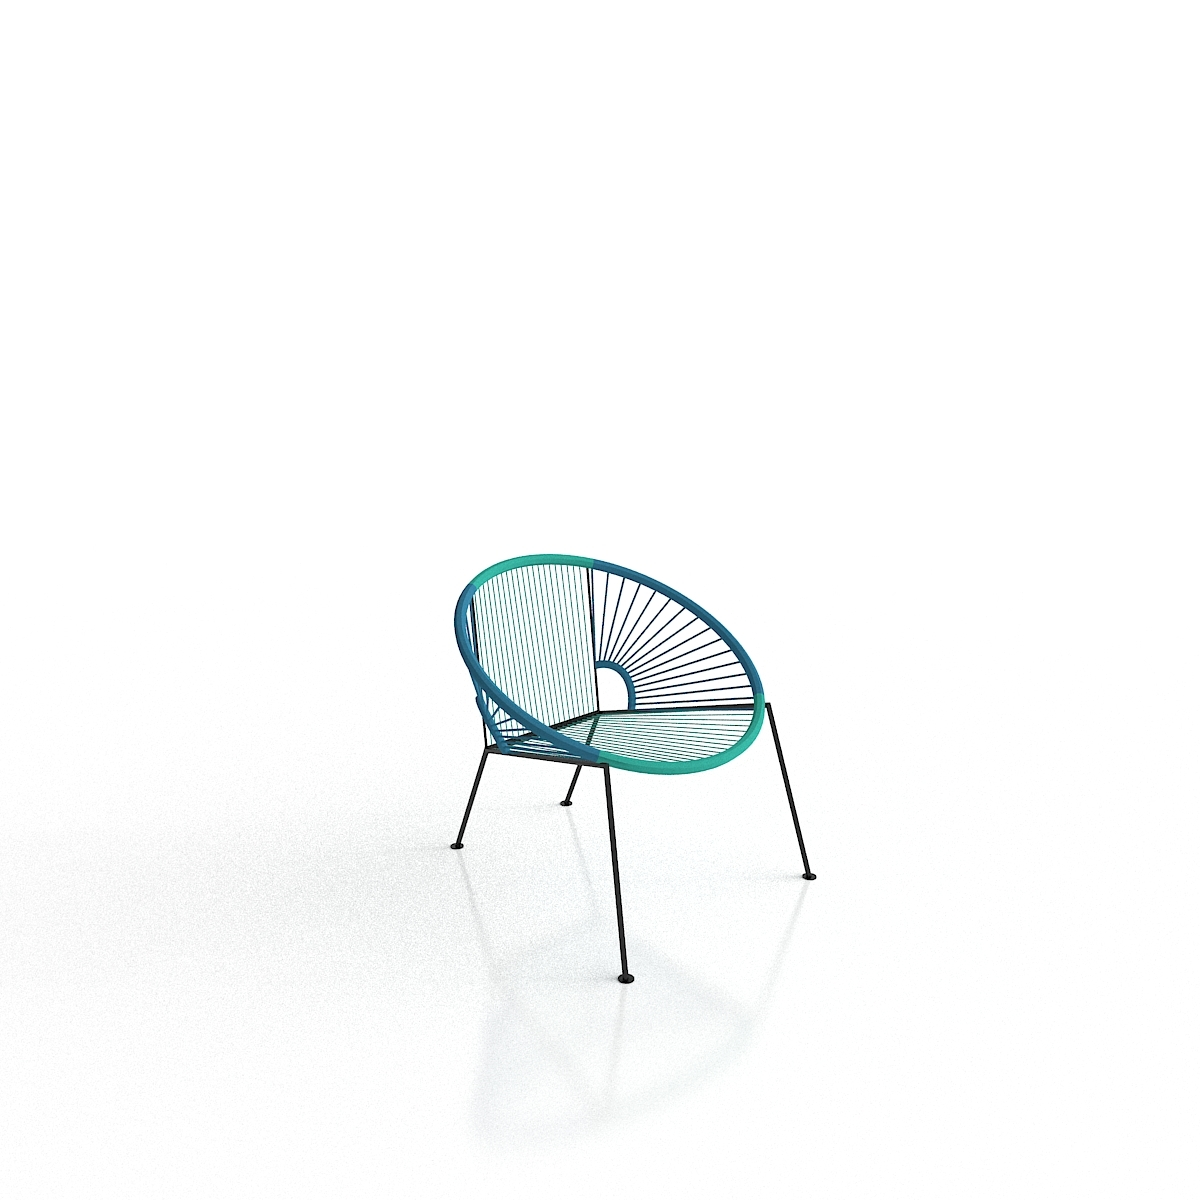 Excellent Cb2 Ixtapa Blue Outdoor Lounge Chair Pdpeps Interior Chair Design Pdpepsorg